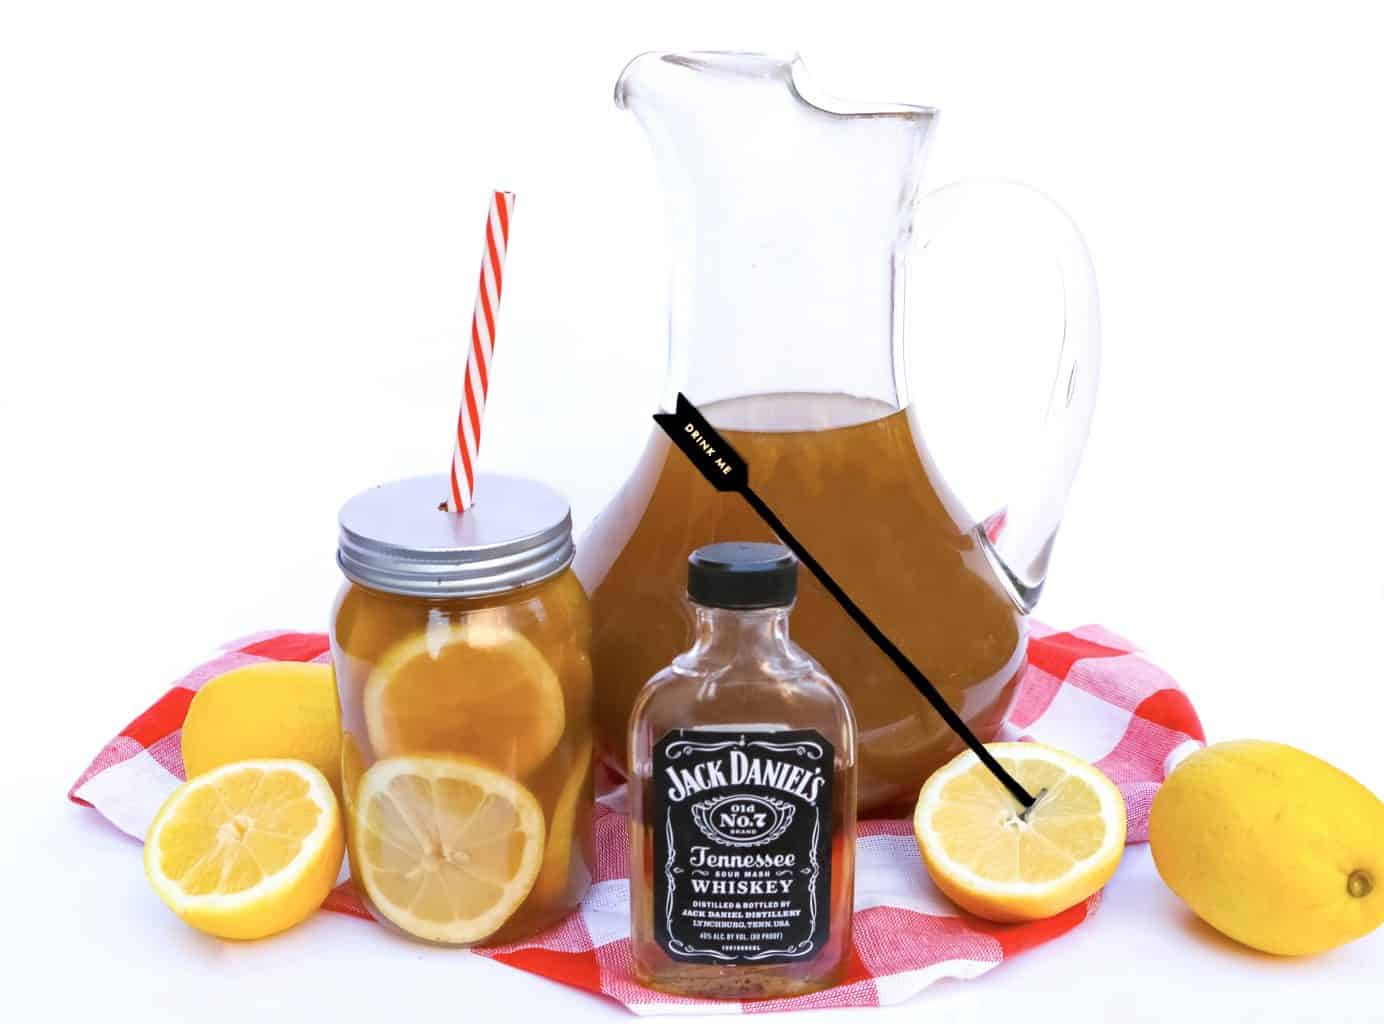 spiked tea recipe with jack daniels